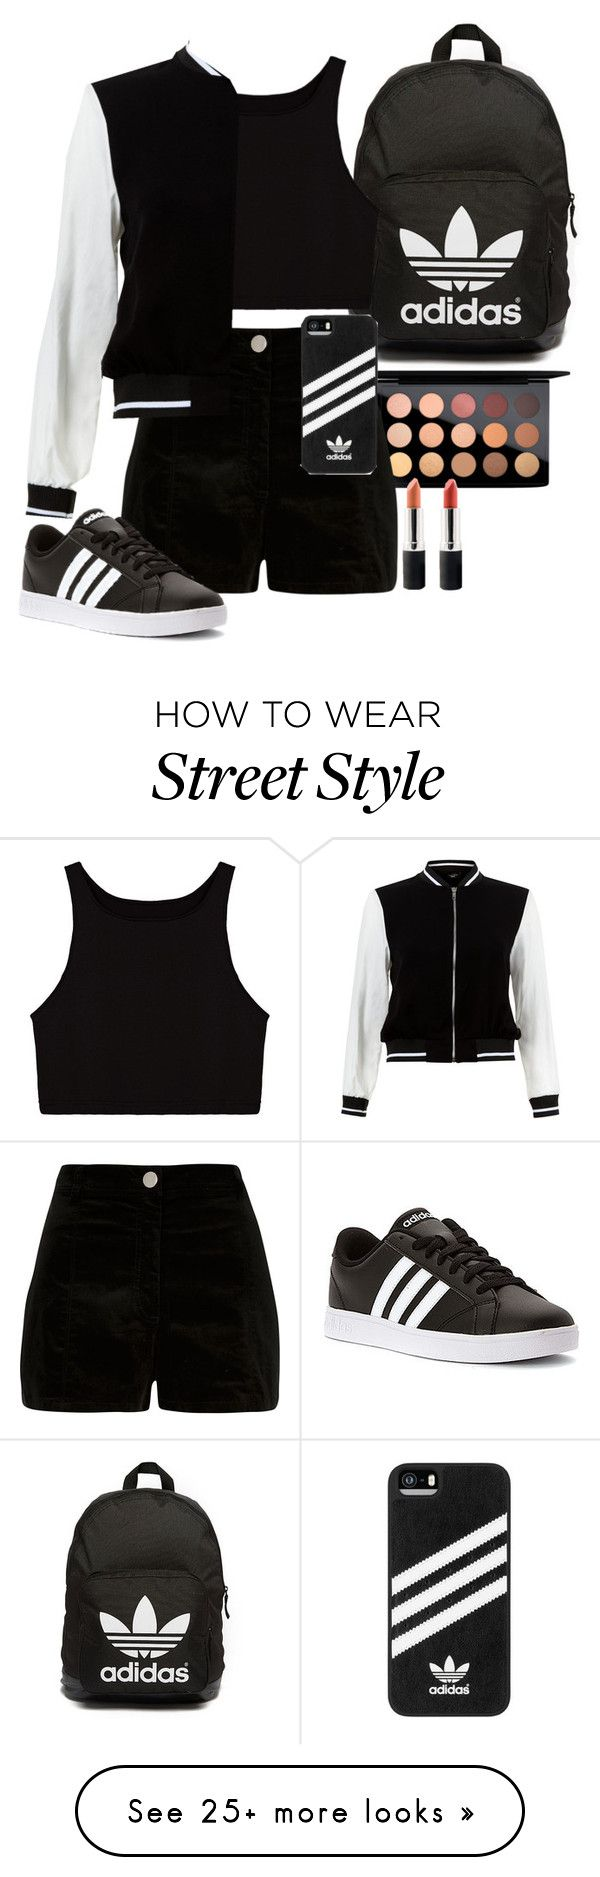 """""""Street style"""" by seventeene on Polyvore featuring MAC Cosmetics, River Island, adidas, adidas Originals, New Look, Terre Mère, tokyo and Packandgo"""